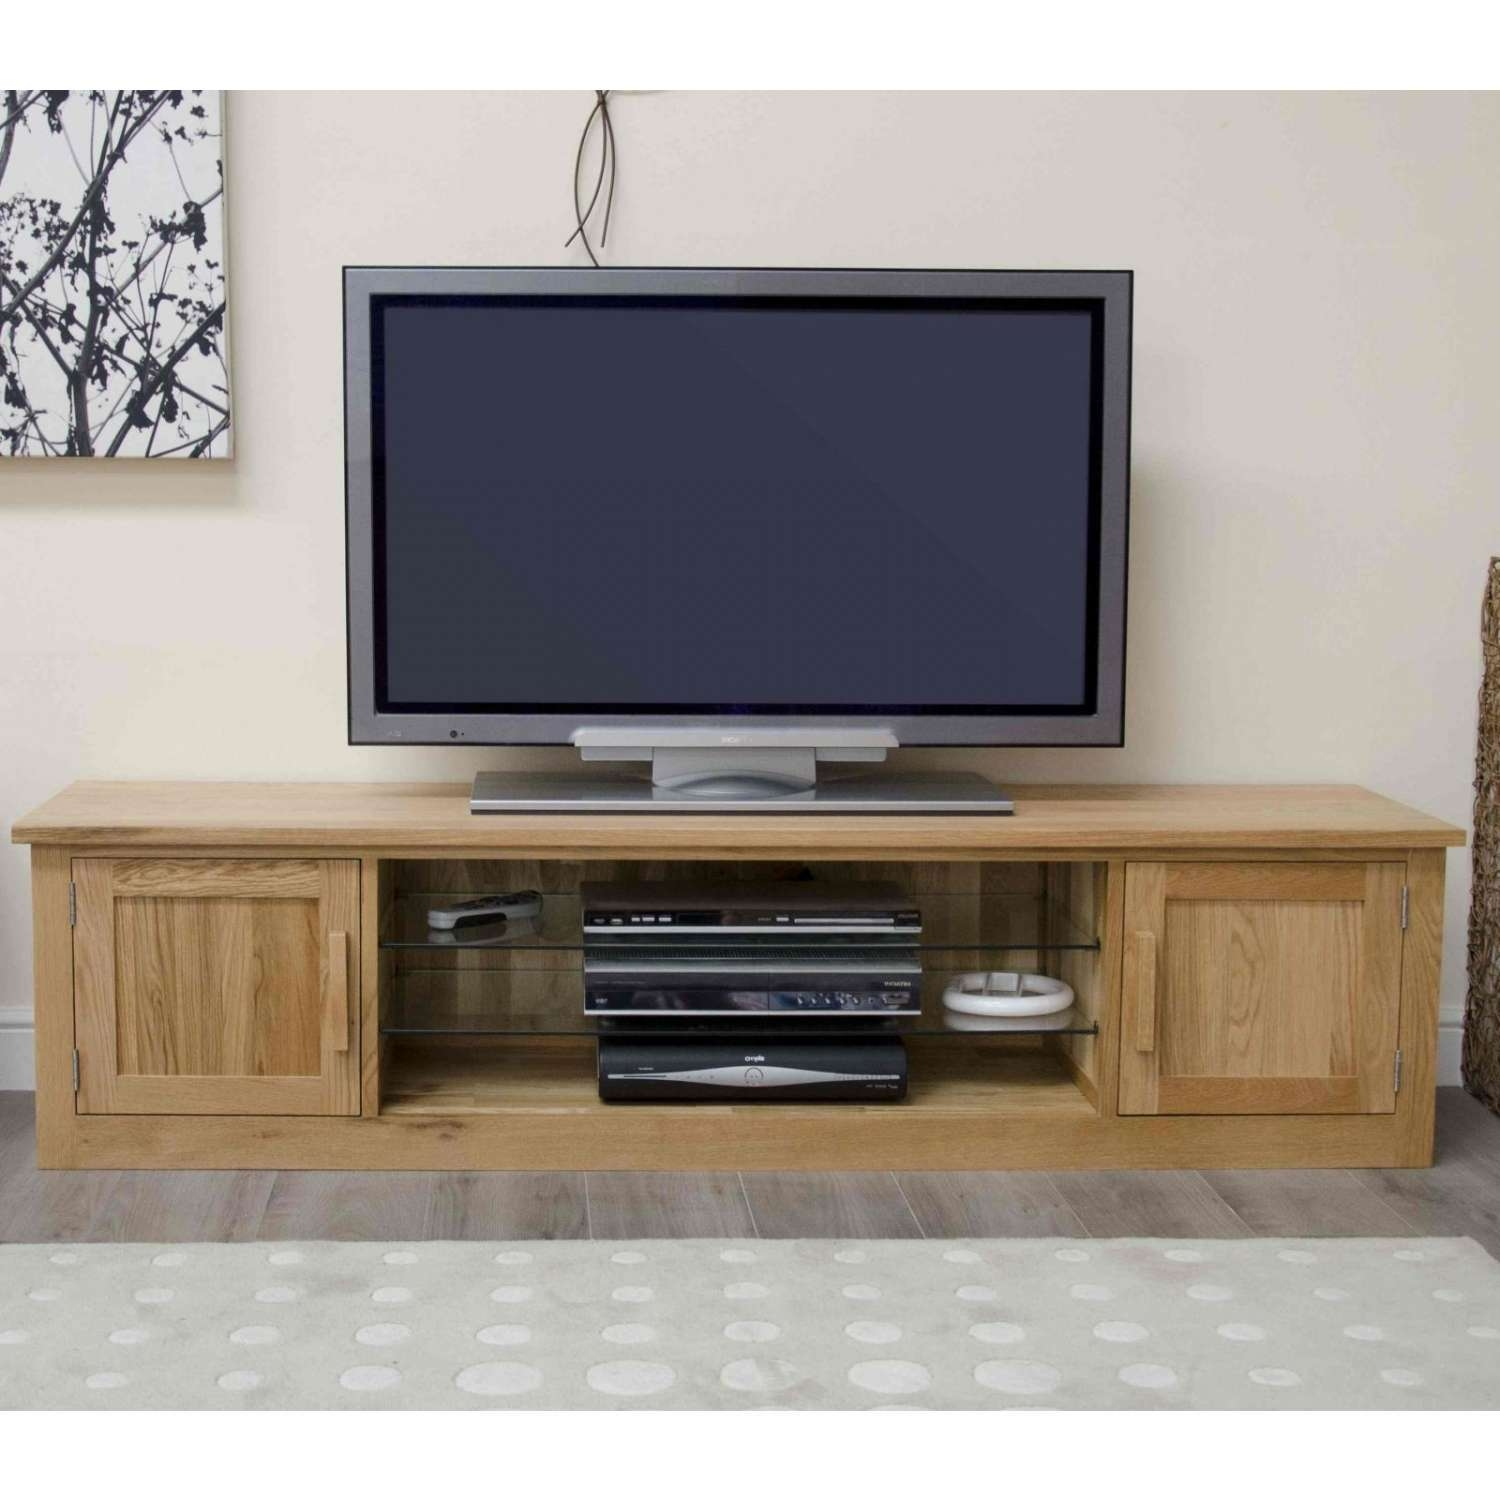 Arden Solid Oak Living Room Furniture Large Widescreen Tv Cabinet Intended For Solid Oak Tv Cabinets (View 2 of 20)